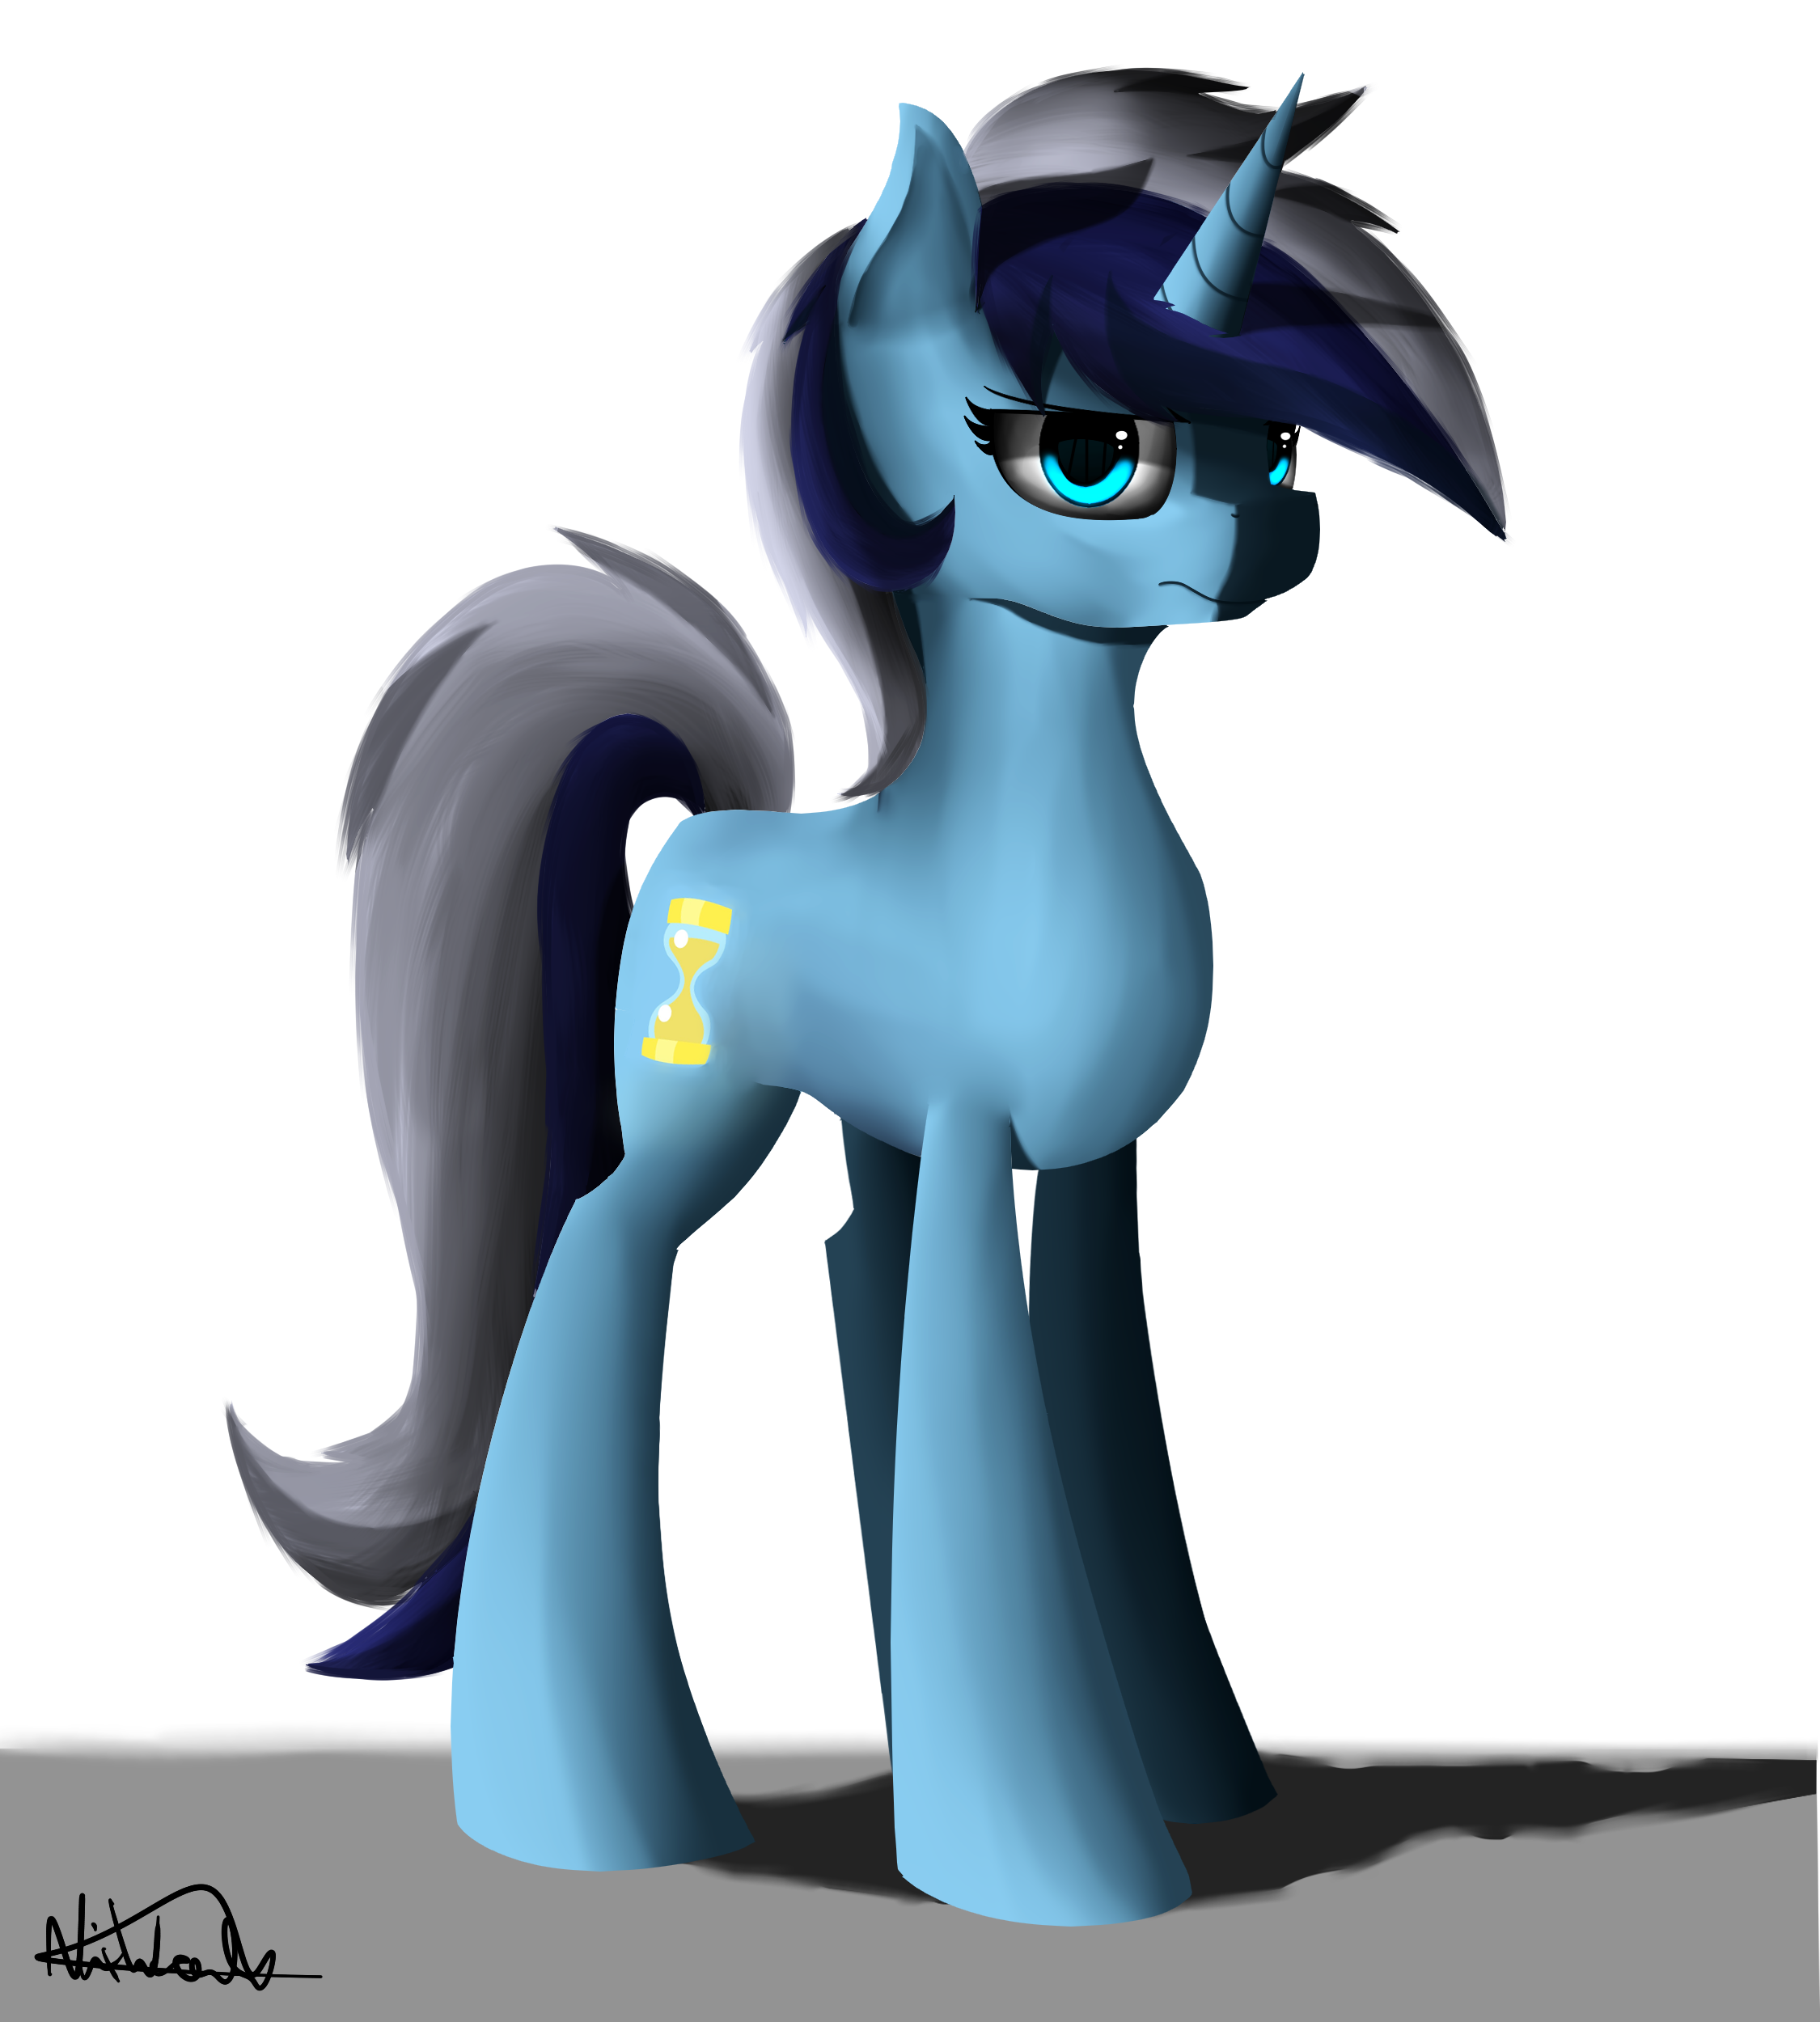 minuette_by_nixworld-dch4ey6.png